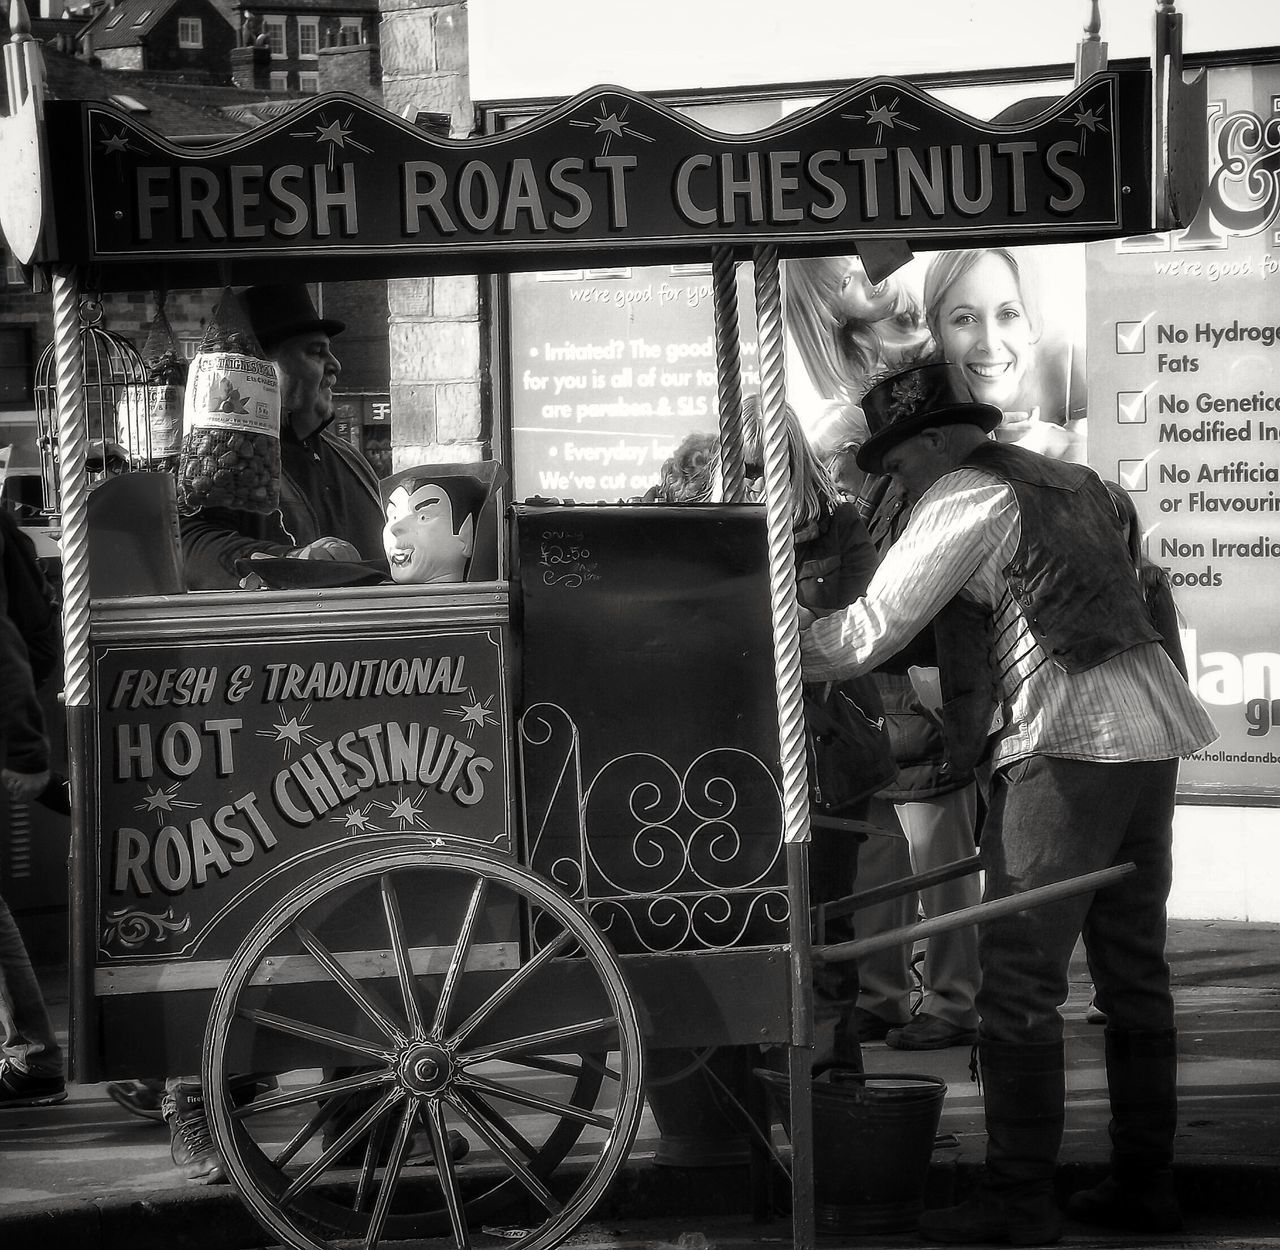 Old fashioned traditional roast chestnuts in whitby Town you don't often see these in many places One Person One Man Only Malephotographerofthemonth Fujifilm Portrait Yorkshire Whitby History Old Fashioned, Old Fashioned Fast Food Black And White Black And White Photography Black And White Portrait Monochrome Photography Roasted Chestnut Enjoy The New Normal